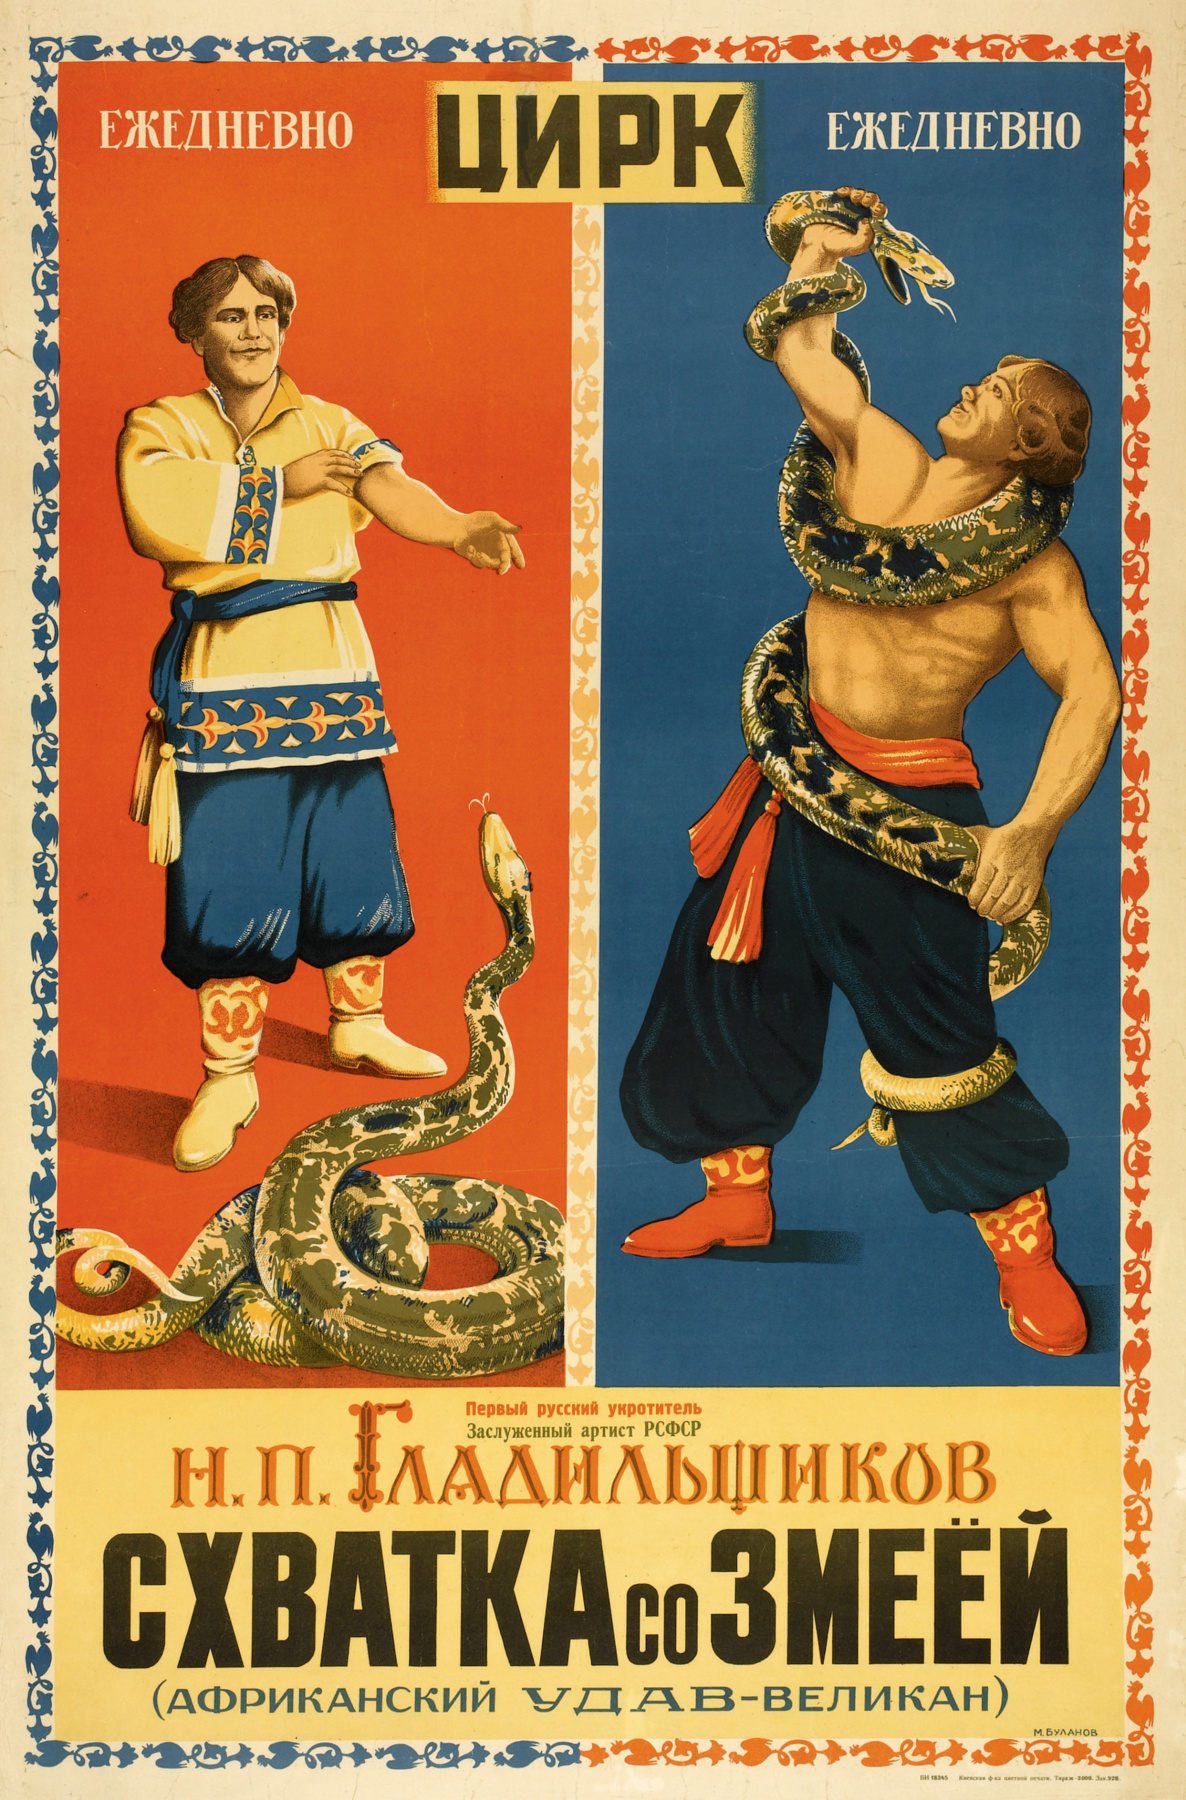 Mikhail Alekseevich Bulanov. First Russian tamer Honored Artist of the RSFSR N. P. Gladilschikov. Fight with a snake (African giant boa)